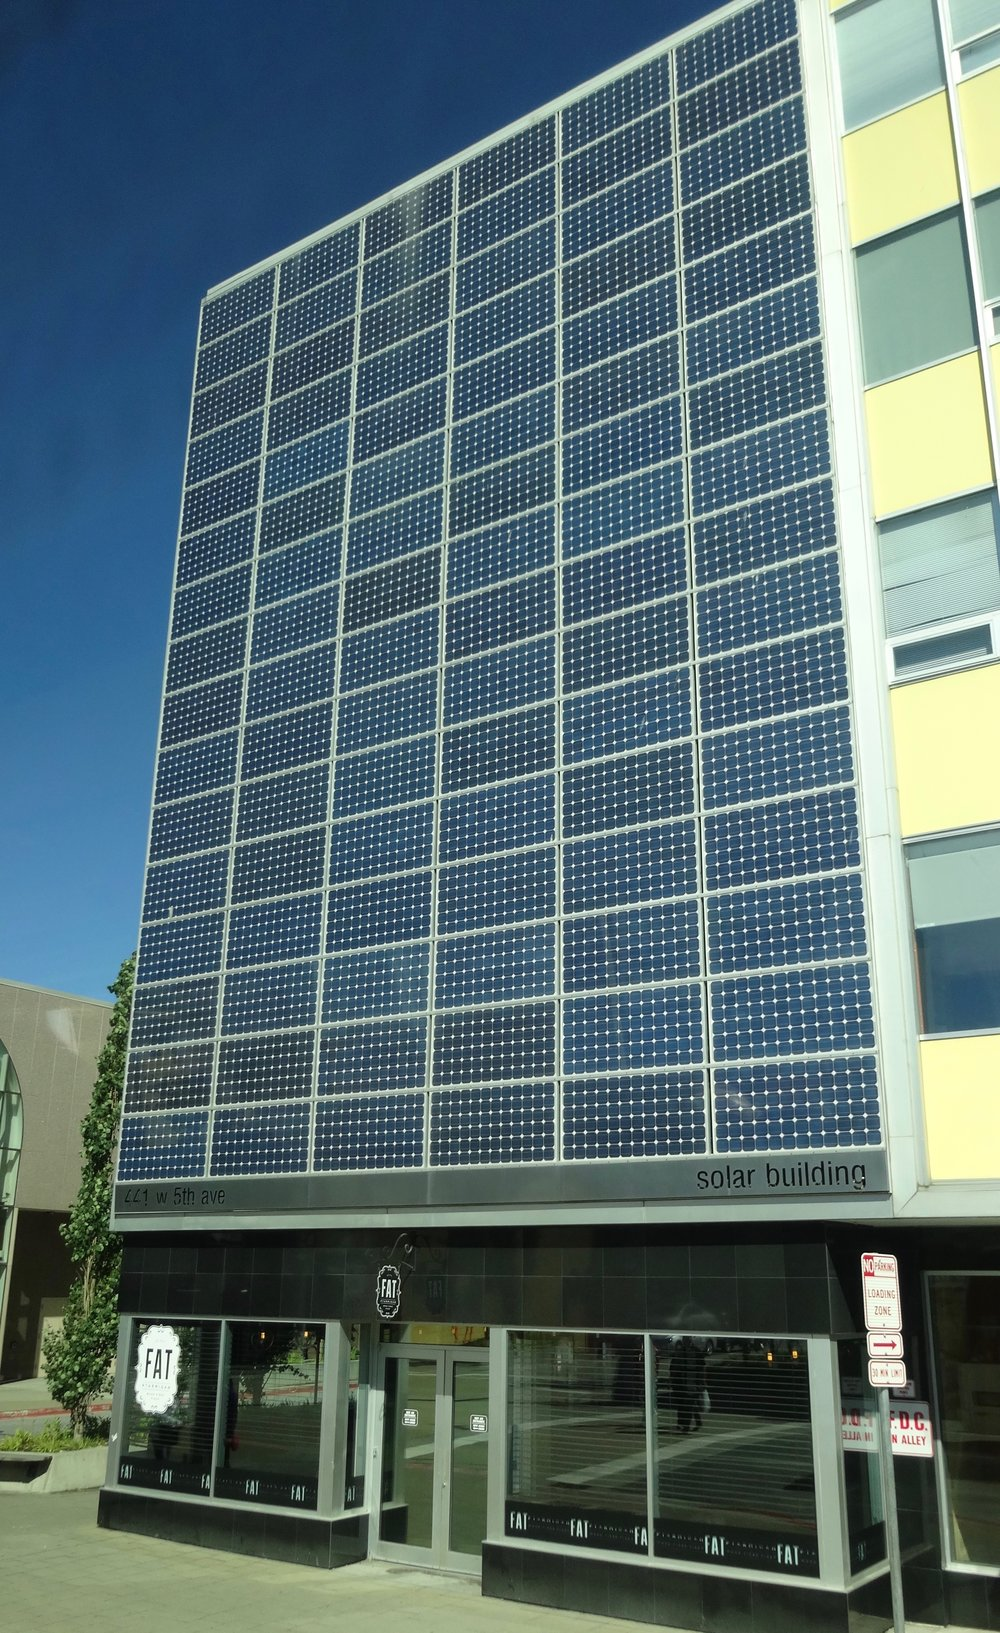 solar façade in downtown Anchorage - photo by SMF